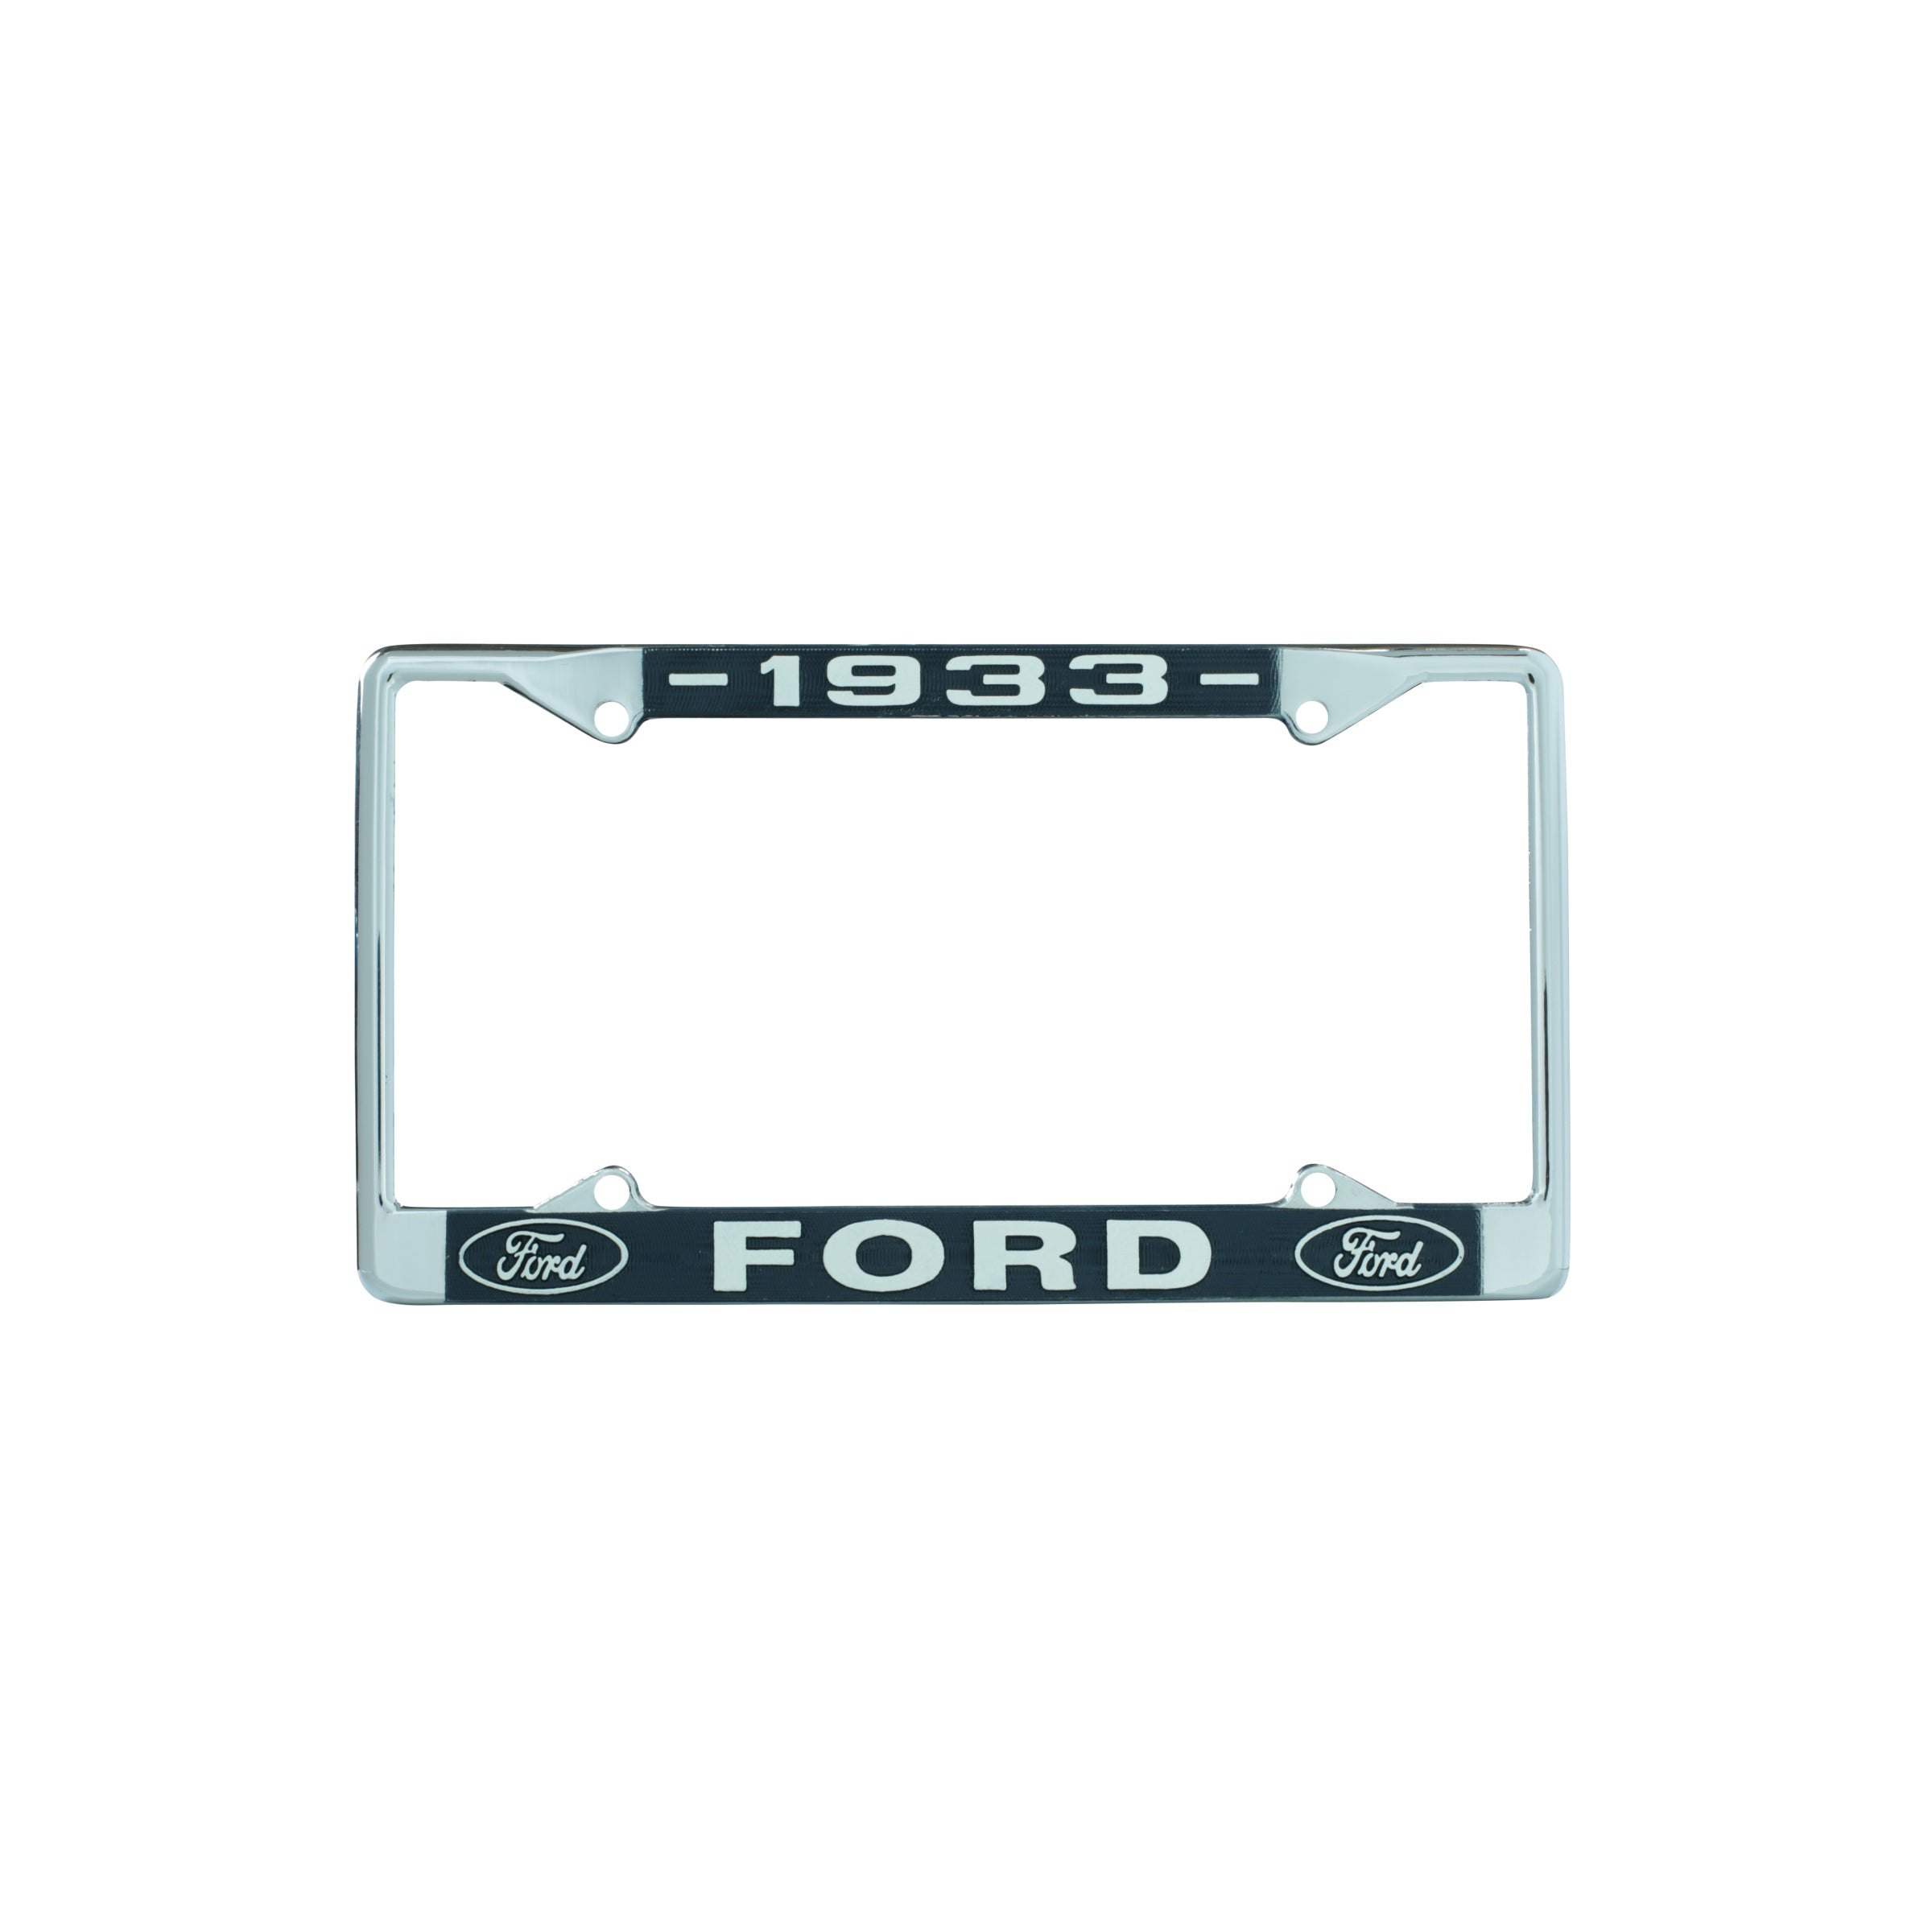 License Plate Frame • 1933 Ford